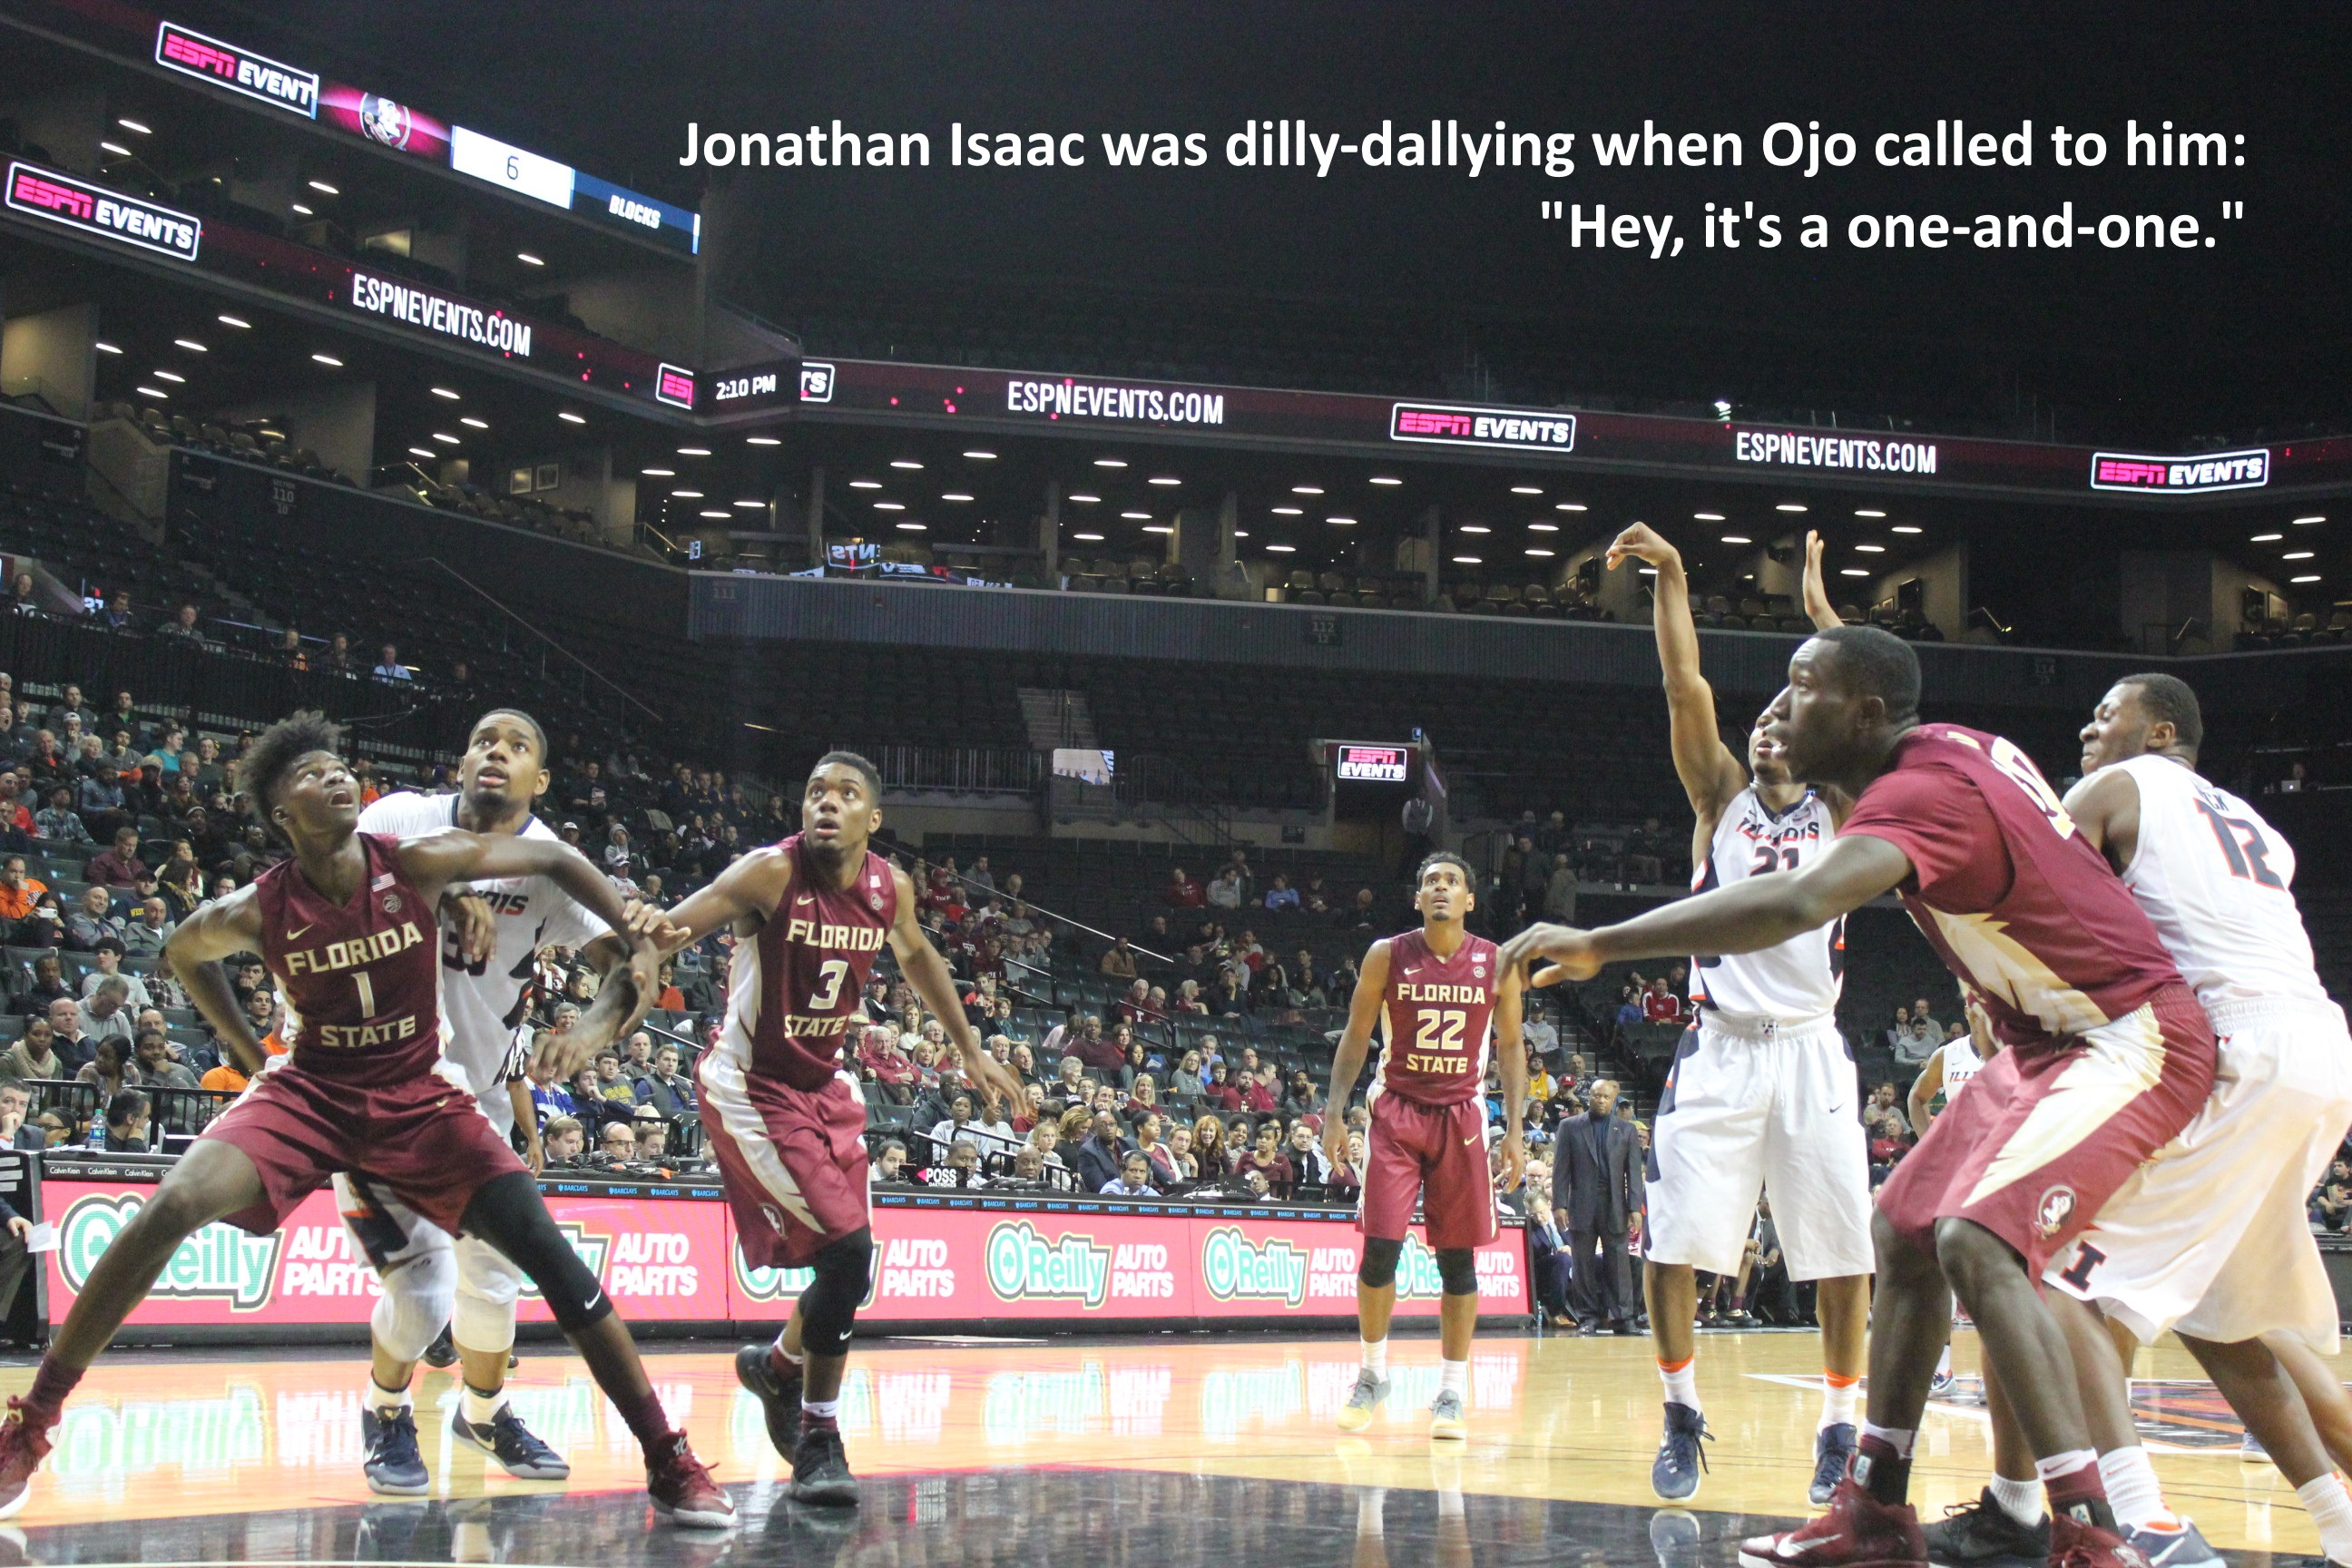 ojo-and-jonathan-isaac-one-and-one